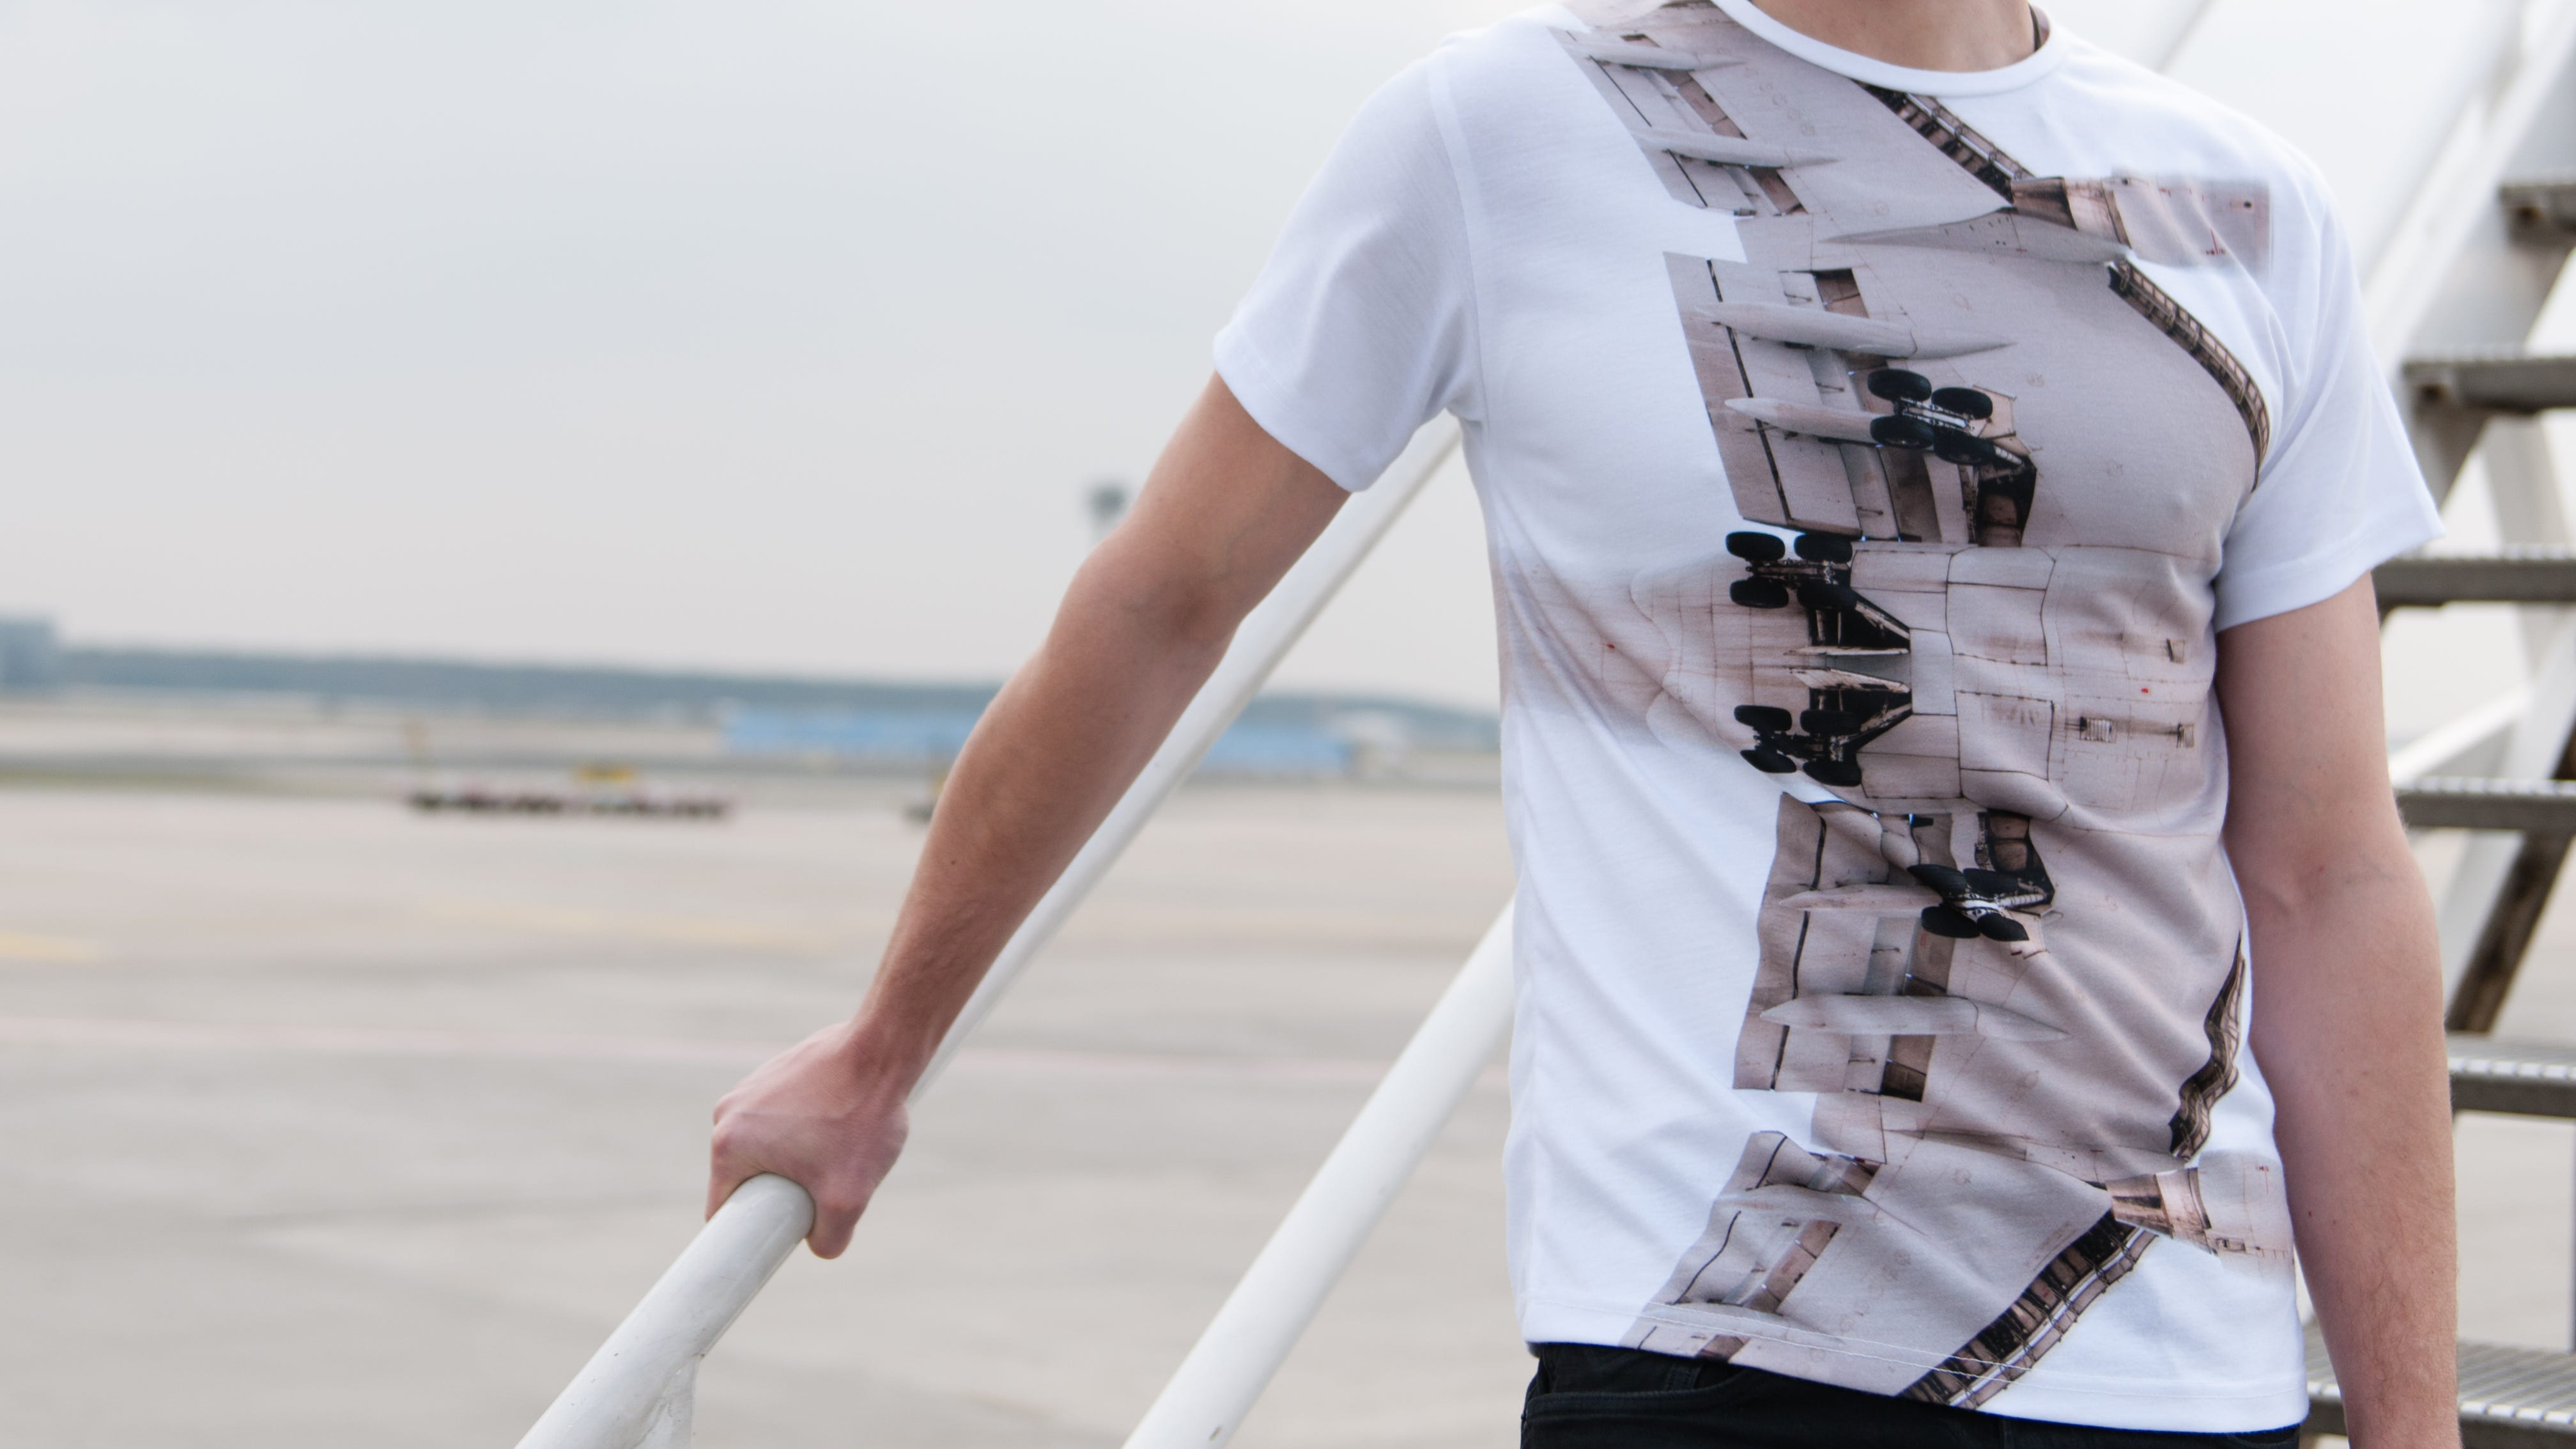 The 'AMS T-shirt' that's for sale as part of photographer Laird Kay's 'Very Plane Clothes' aviation-themed-line.